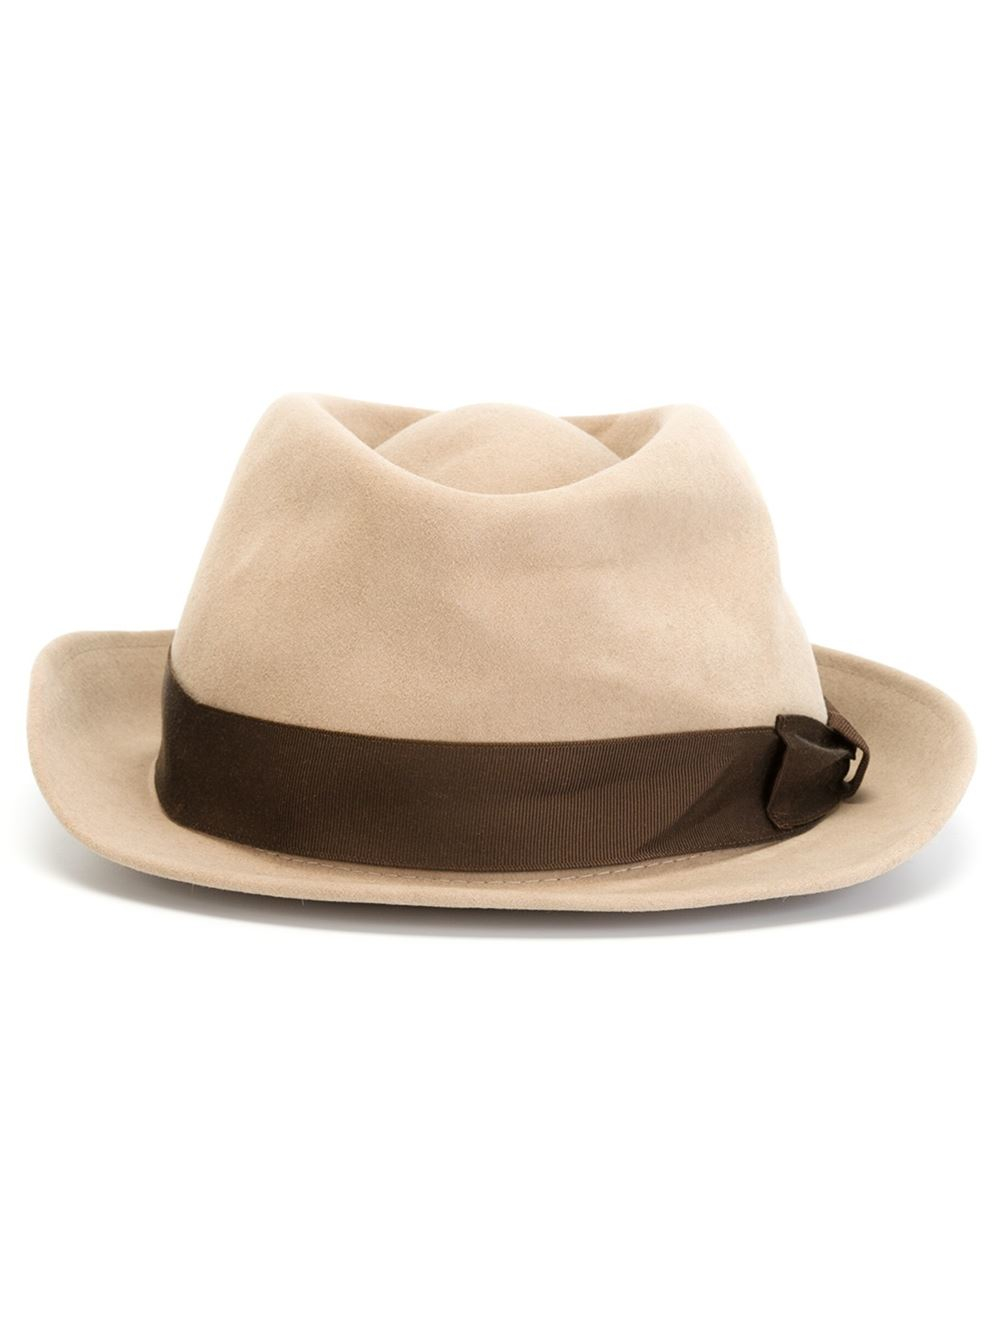 d6392dc3df1 Kiton Grosgrain Band Hat in Natural for Men - Lyst